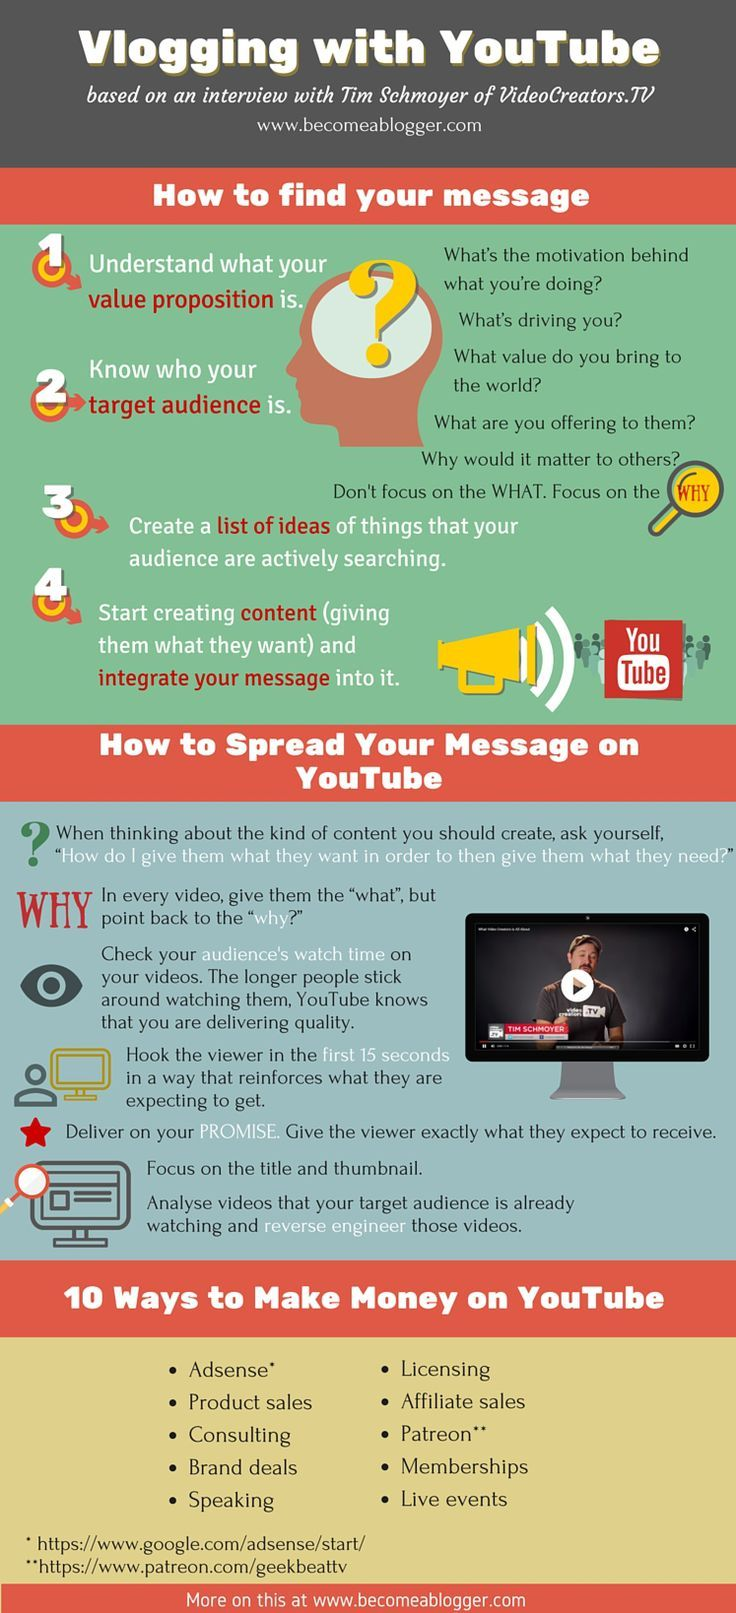 How to find your message and spread it on You Tube. Plus, make money!